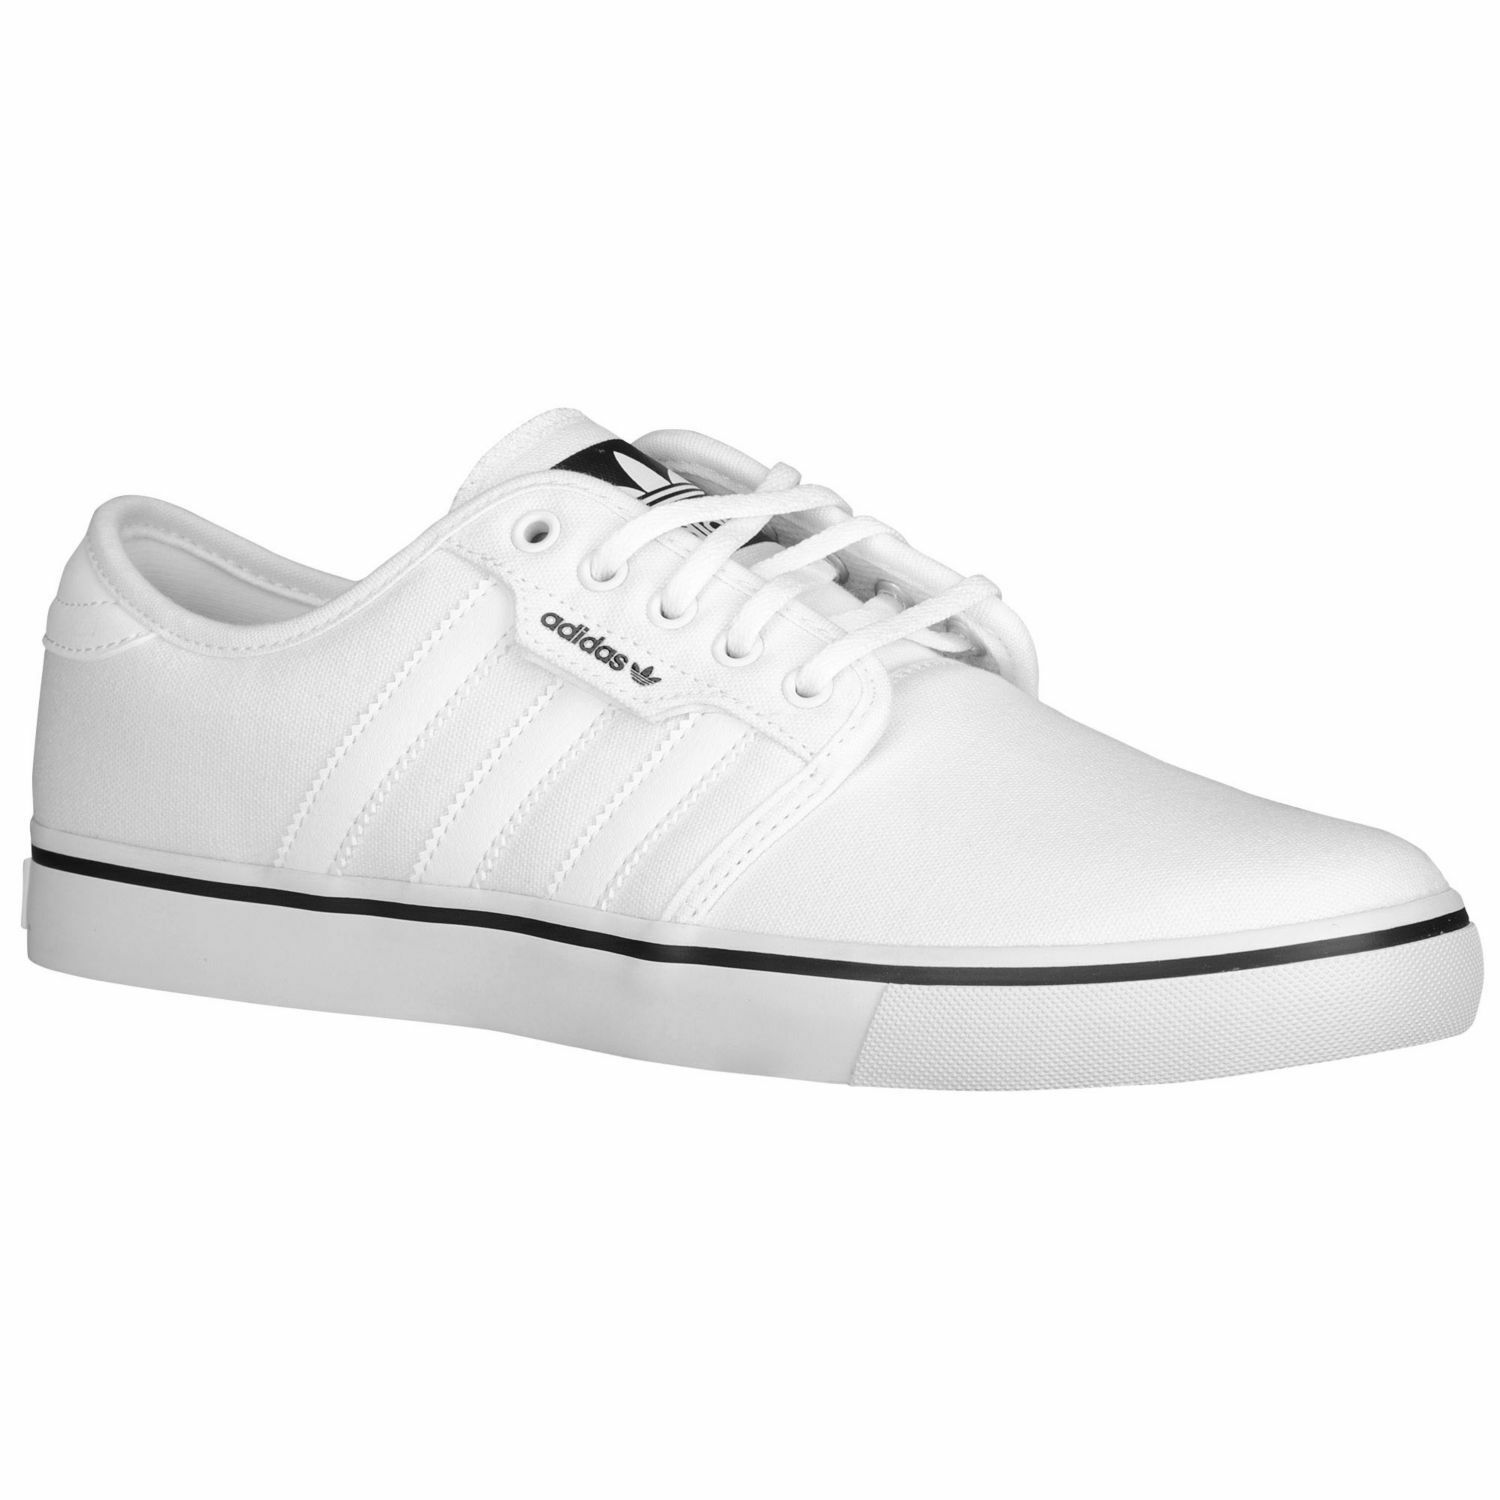 NEW Adidas Seeley Men's Shoes White Black Canvas Classic Skate C76794